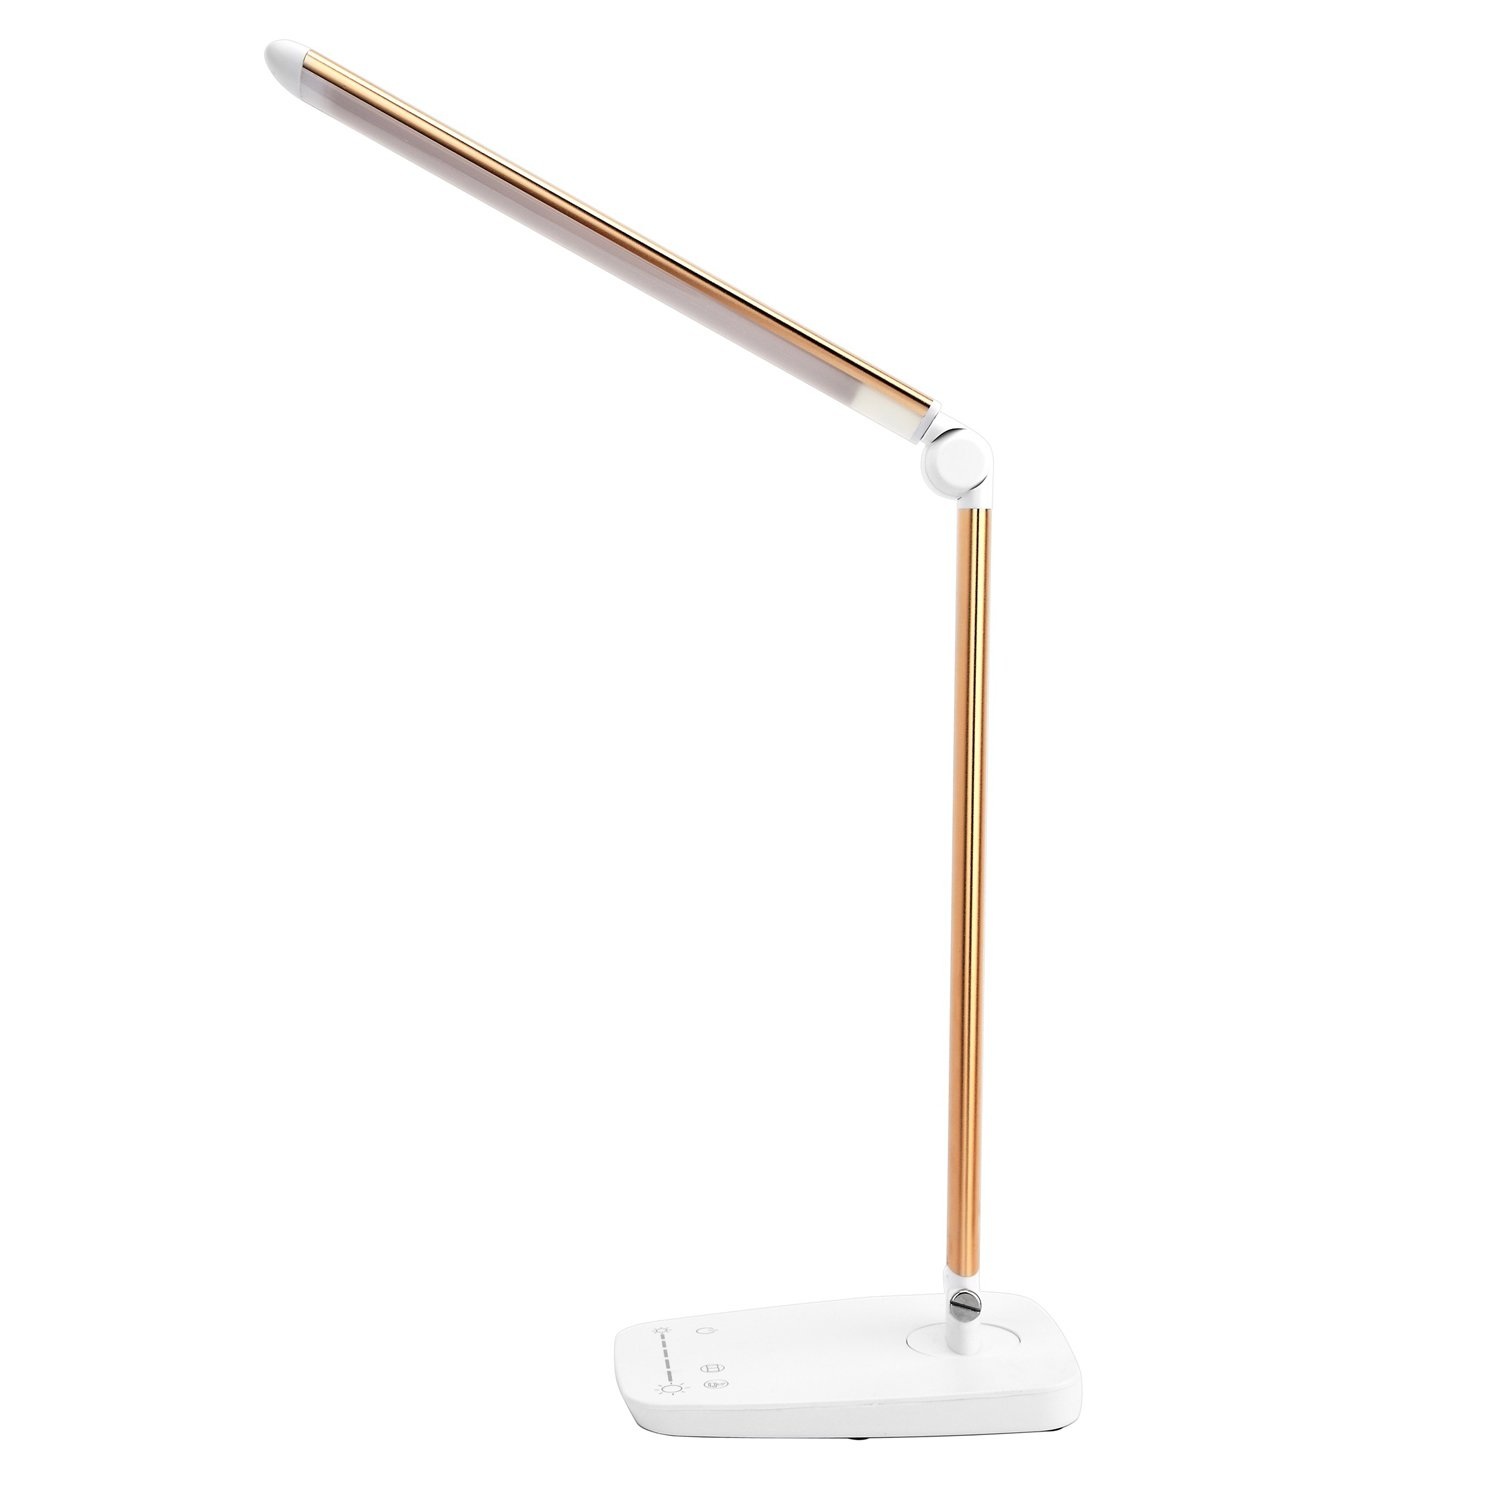 Dimmable LED Desk Lamp with USB Charging Port, Lichamp Touch Control Foldable Gooseneck Free Rotation Adjustable Eye Care Table Lamp, Bedside Reading Light with UL AC Adapter (Gold)